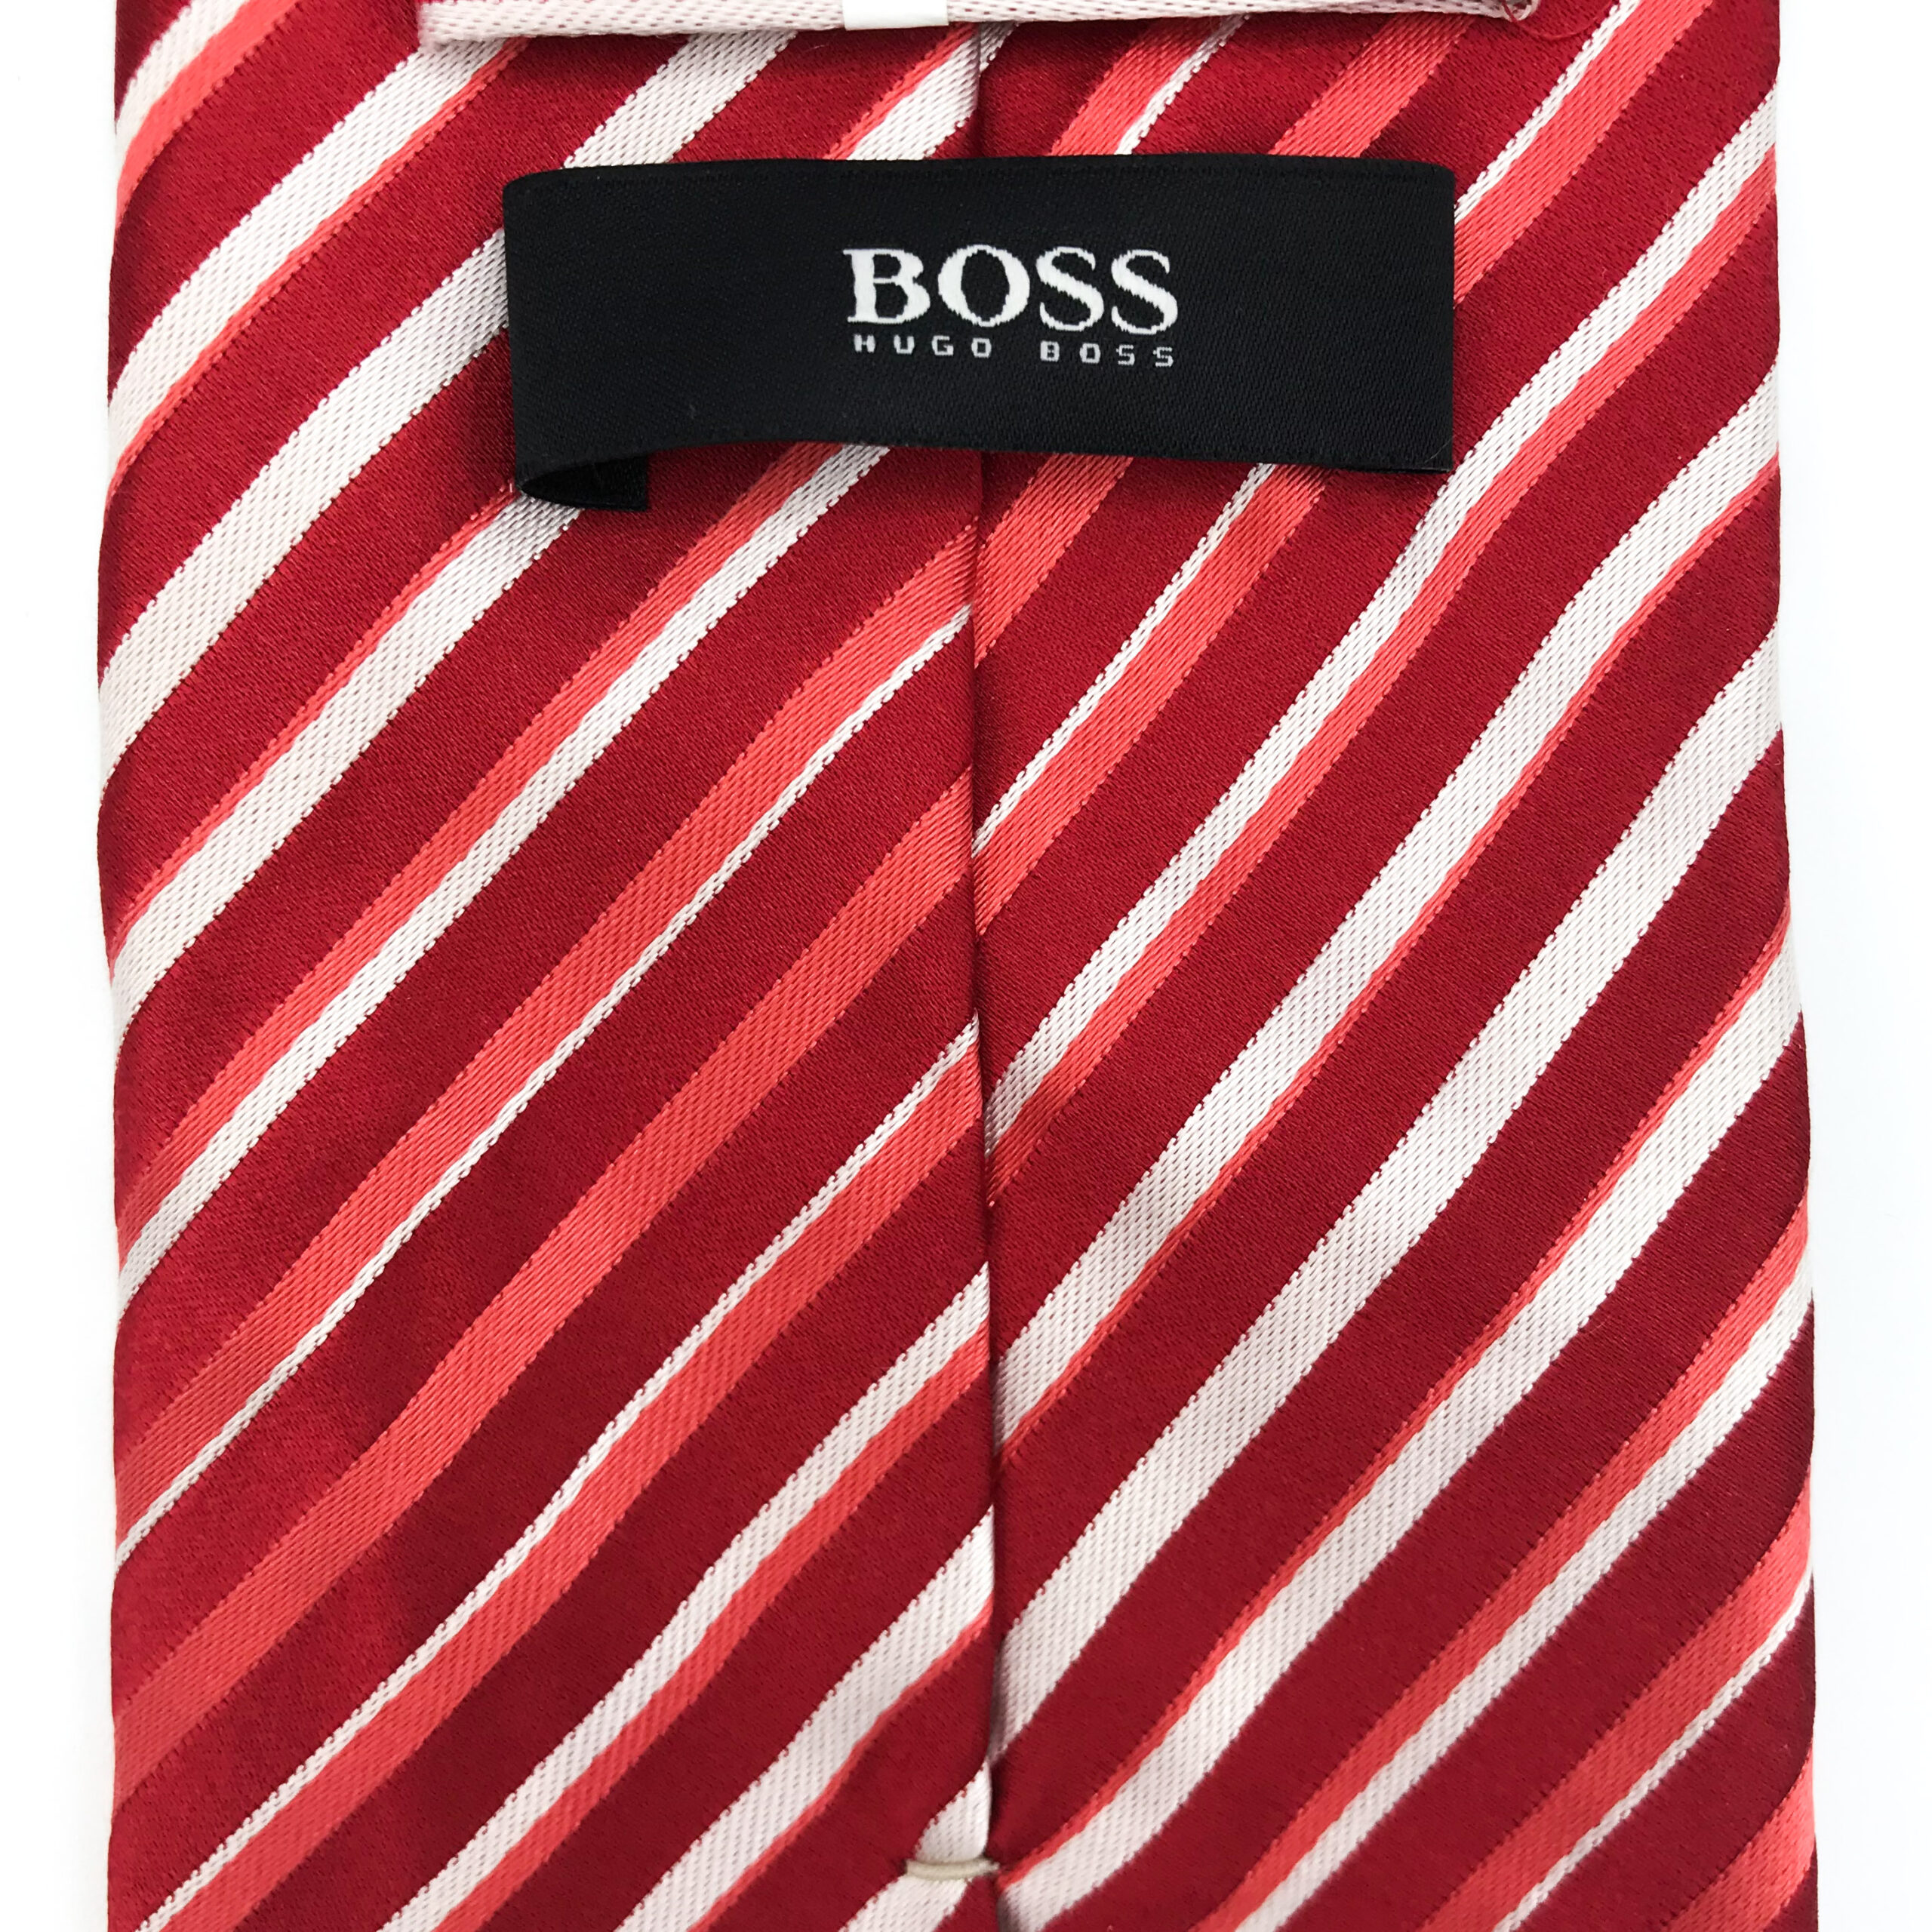 Hugo Boss Red Stripe Tie